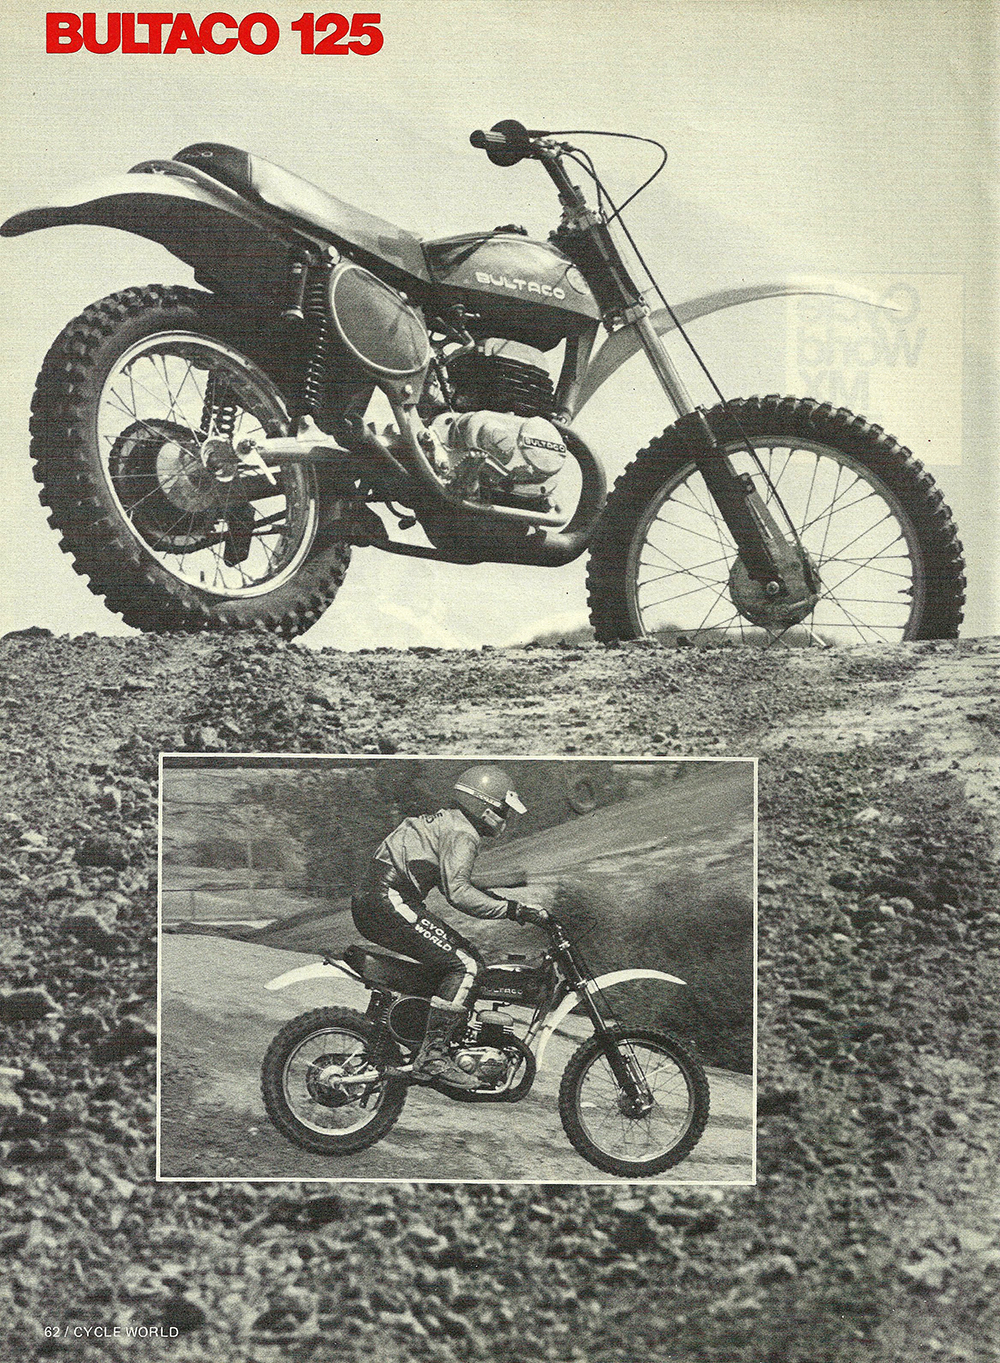 1976 Bultaco 125 Pursang road test 03.jpg